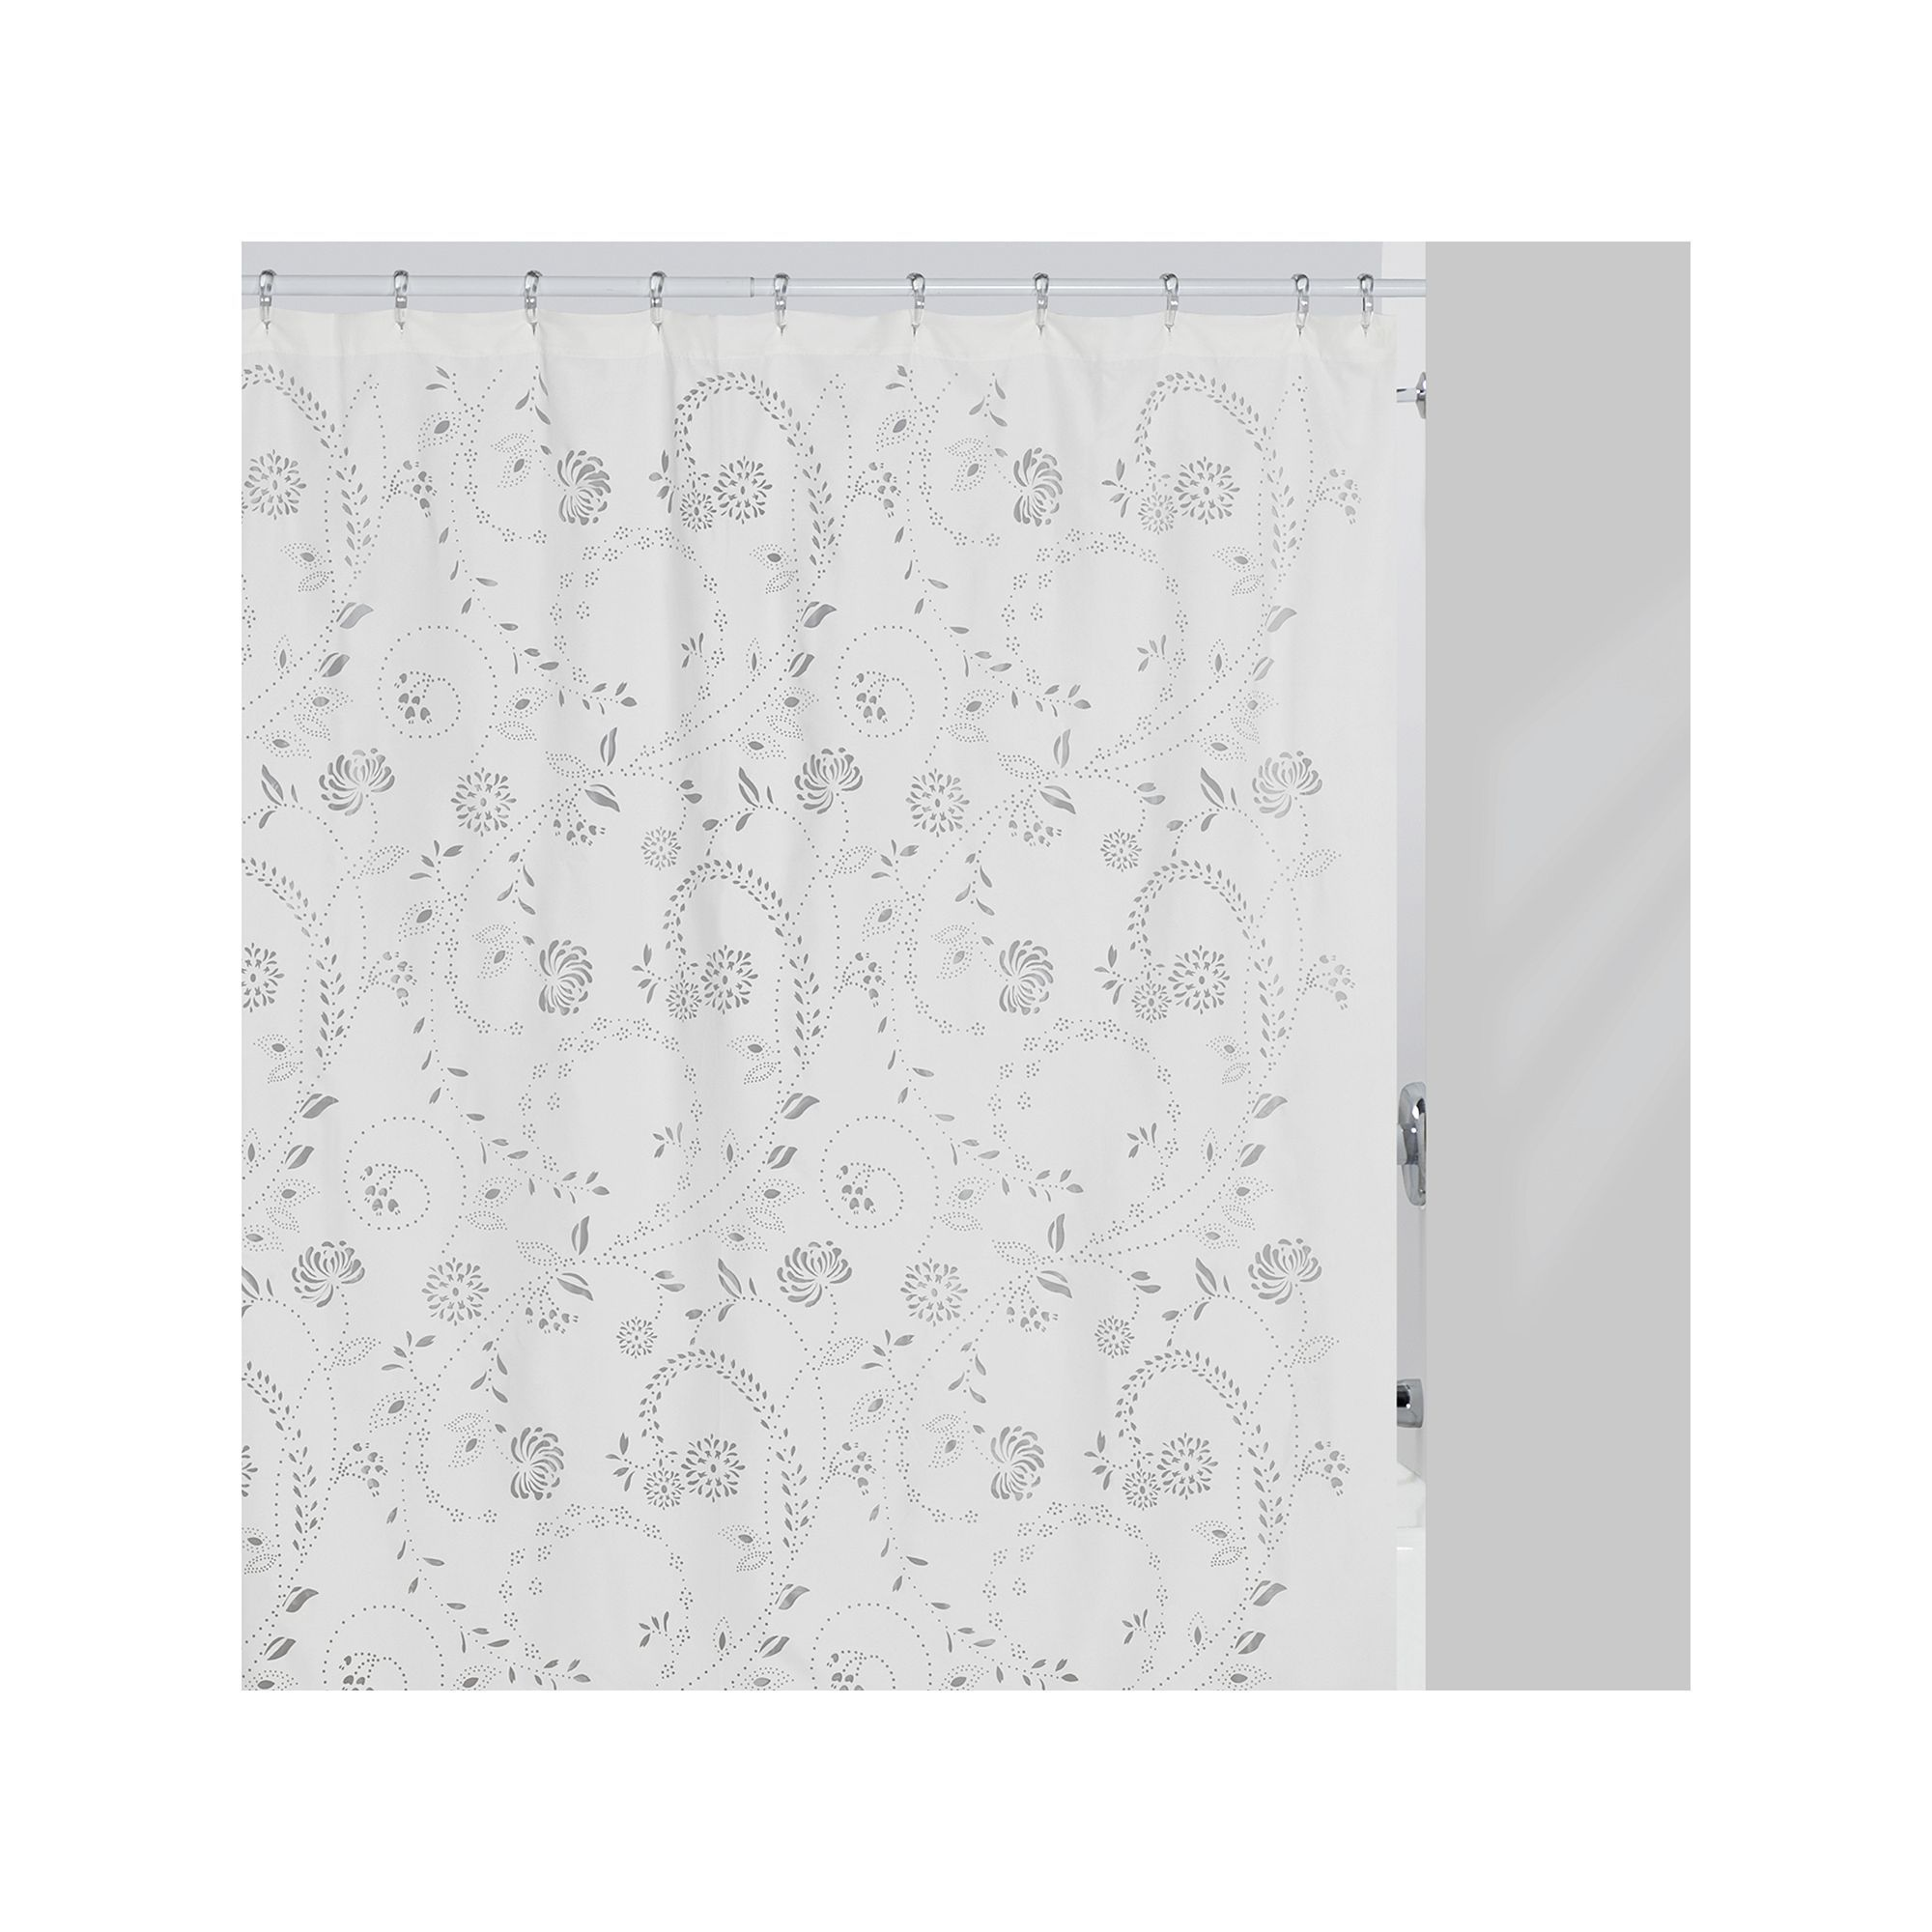 With creative shower curtains white and black creative shower curtain - Creative Bath Eyelet Fabric Shower Curtain White